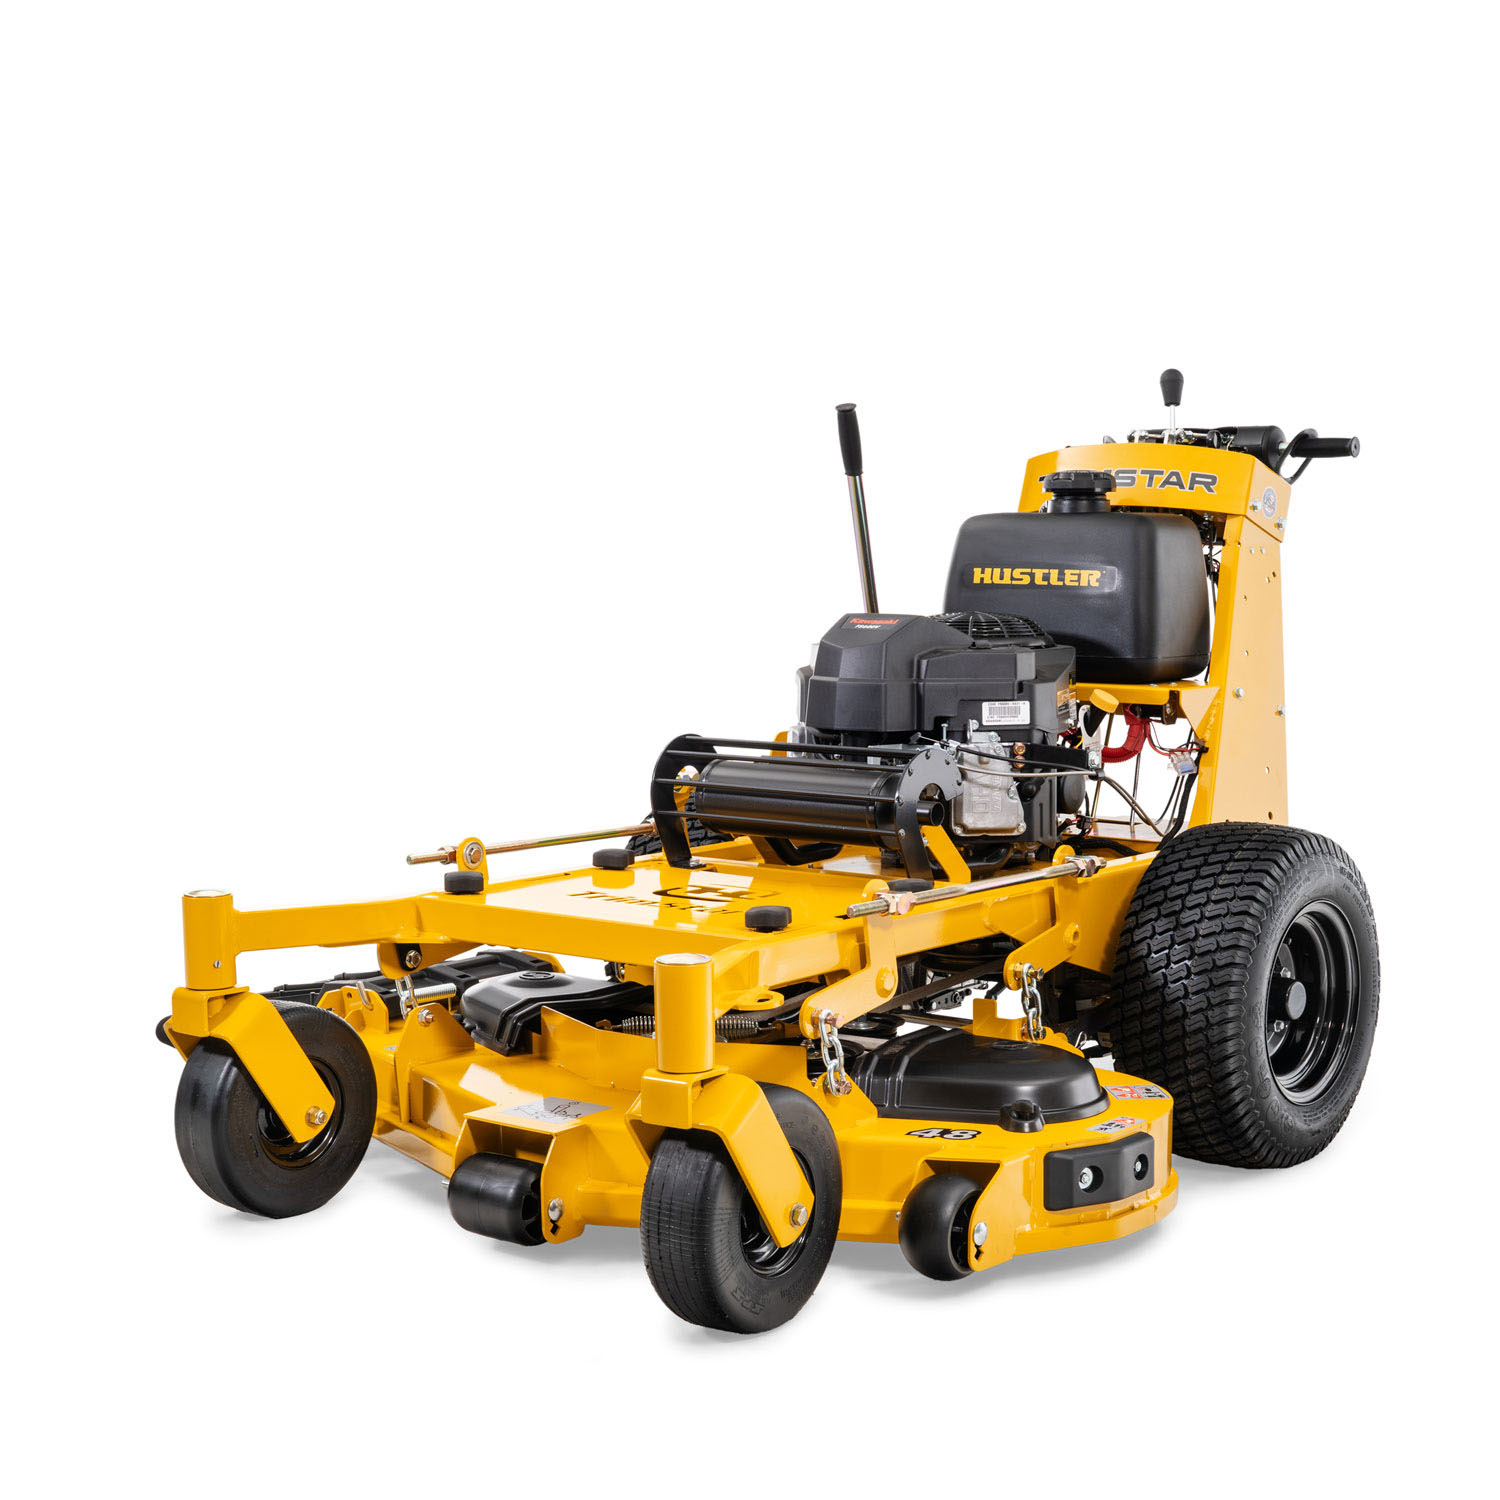 Image of the front three quarters of a yellow walk-behind mower